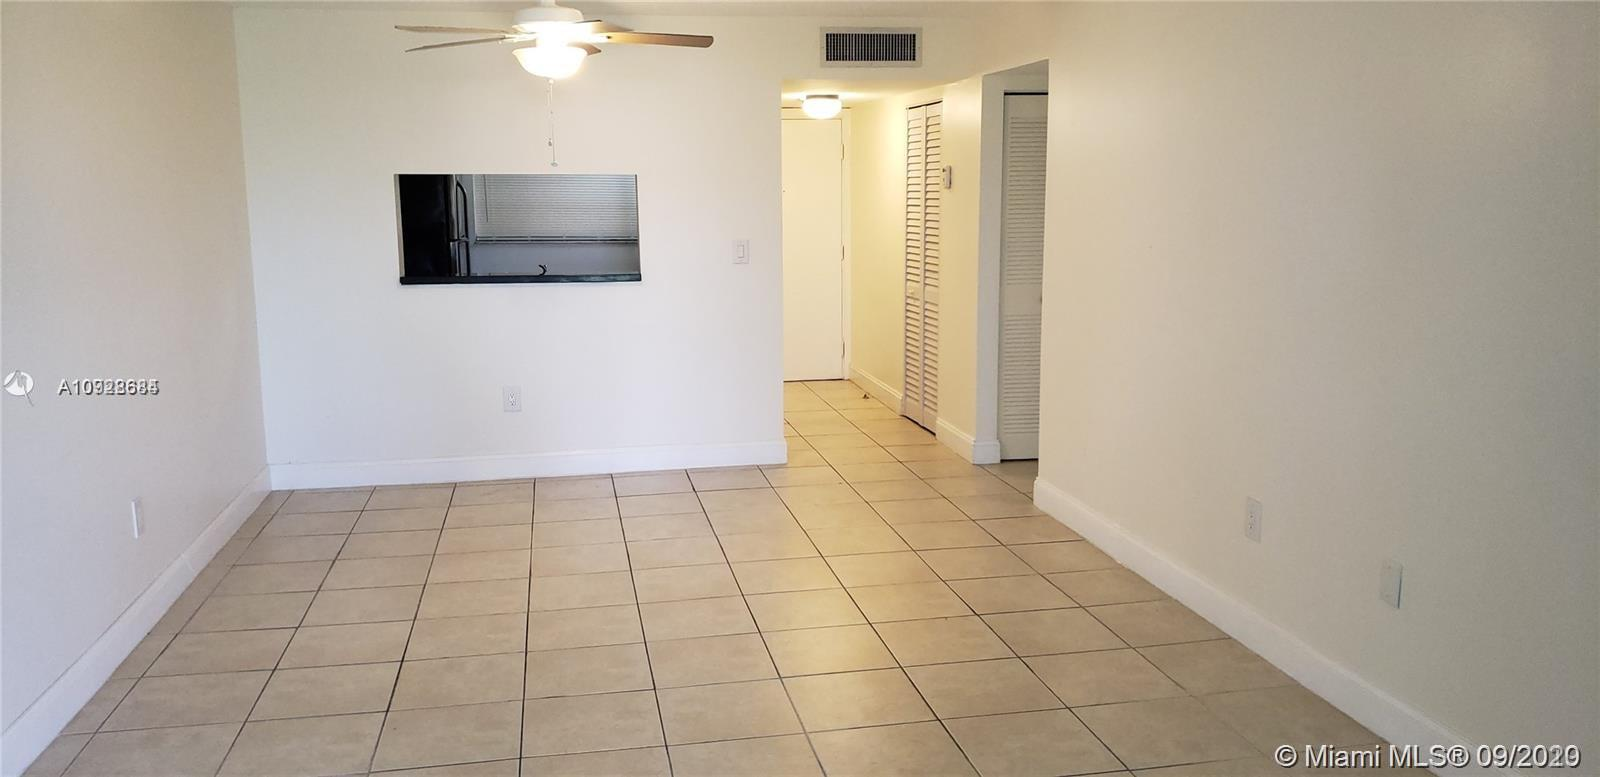 Nice unit in a gated community 2 bedrooms 2 bathrooms. Pool, Clubhouse Tennis court. Walking distance to public transportation close to 878 expressway. Few steps to Miami Dade Community College South Campus.